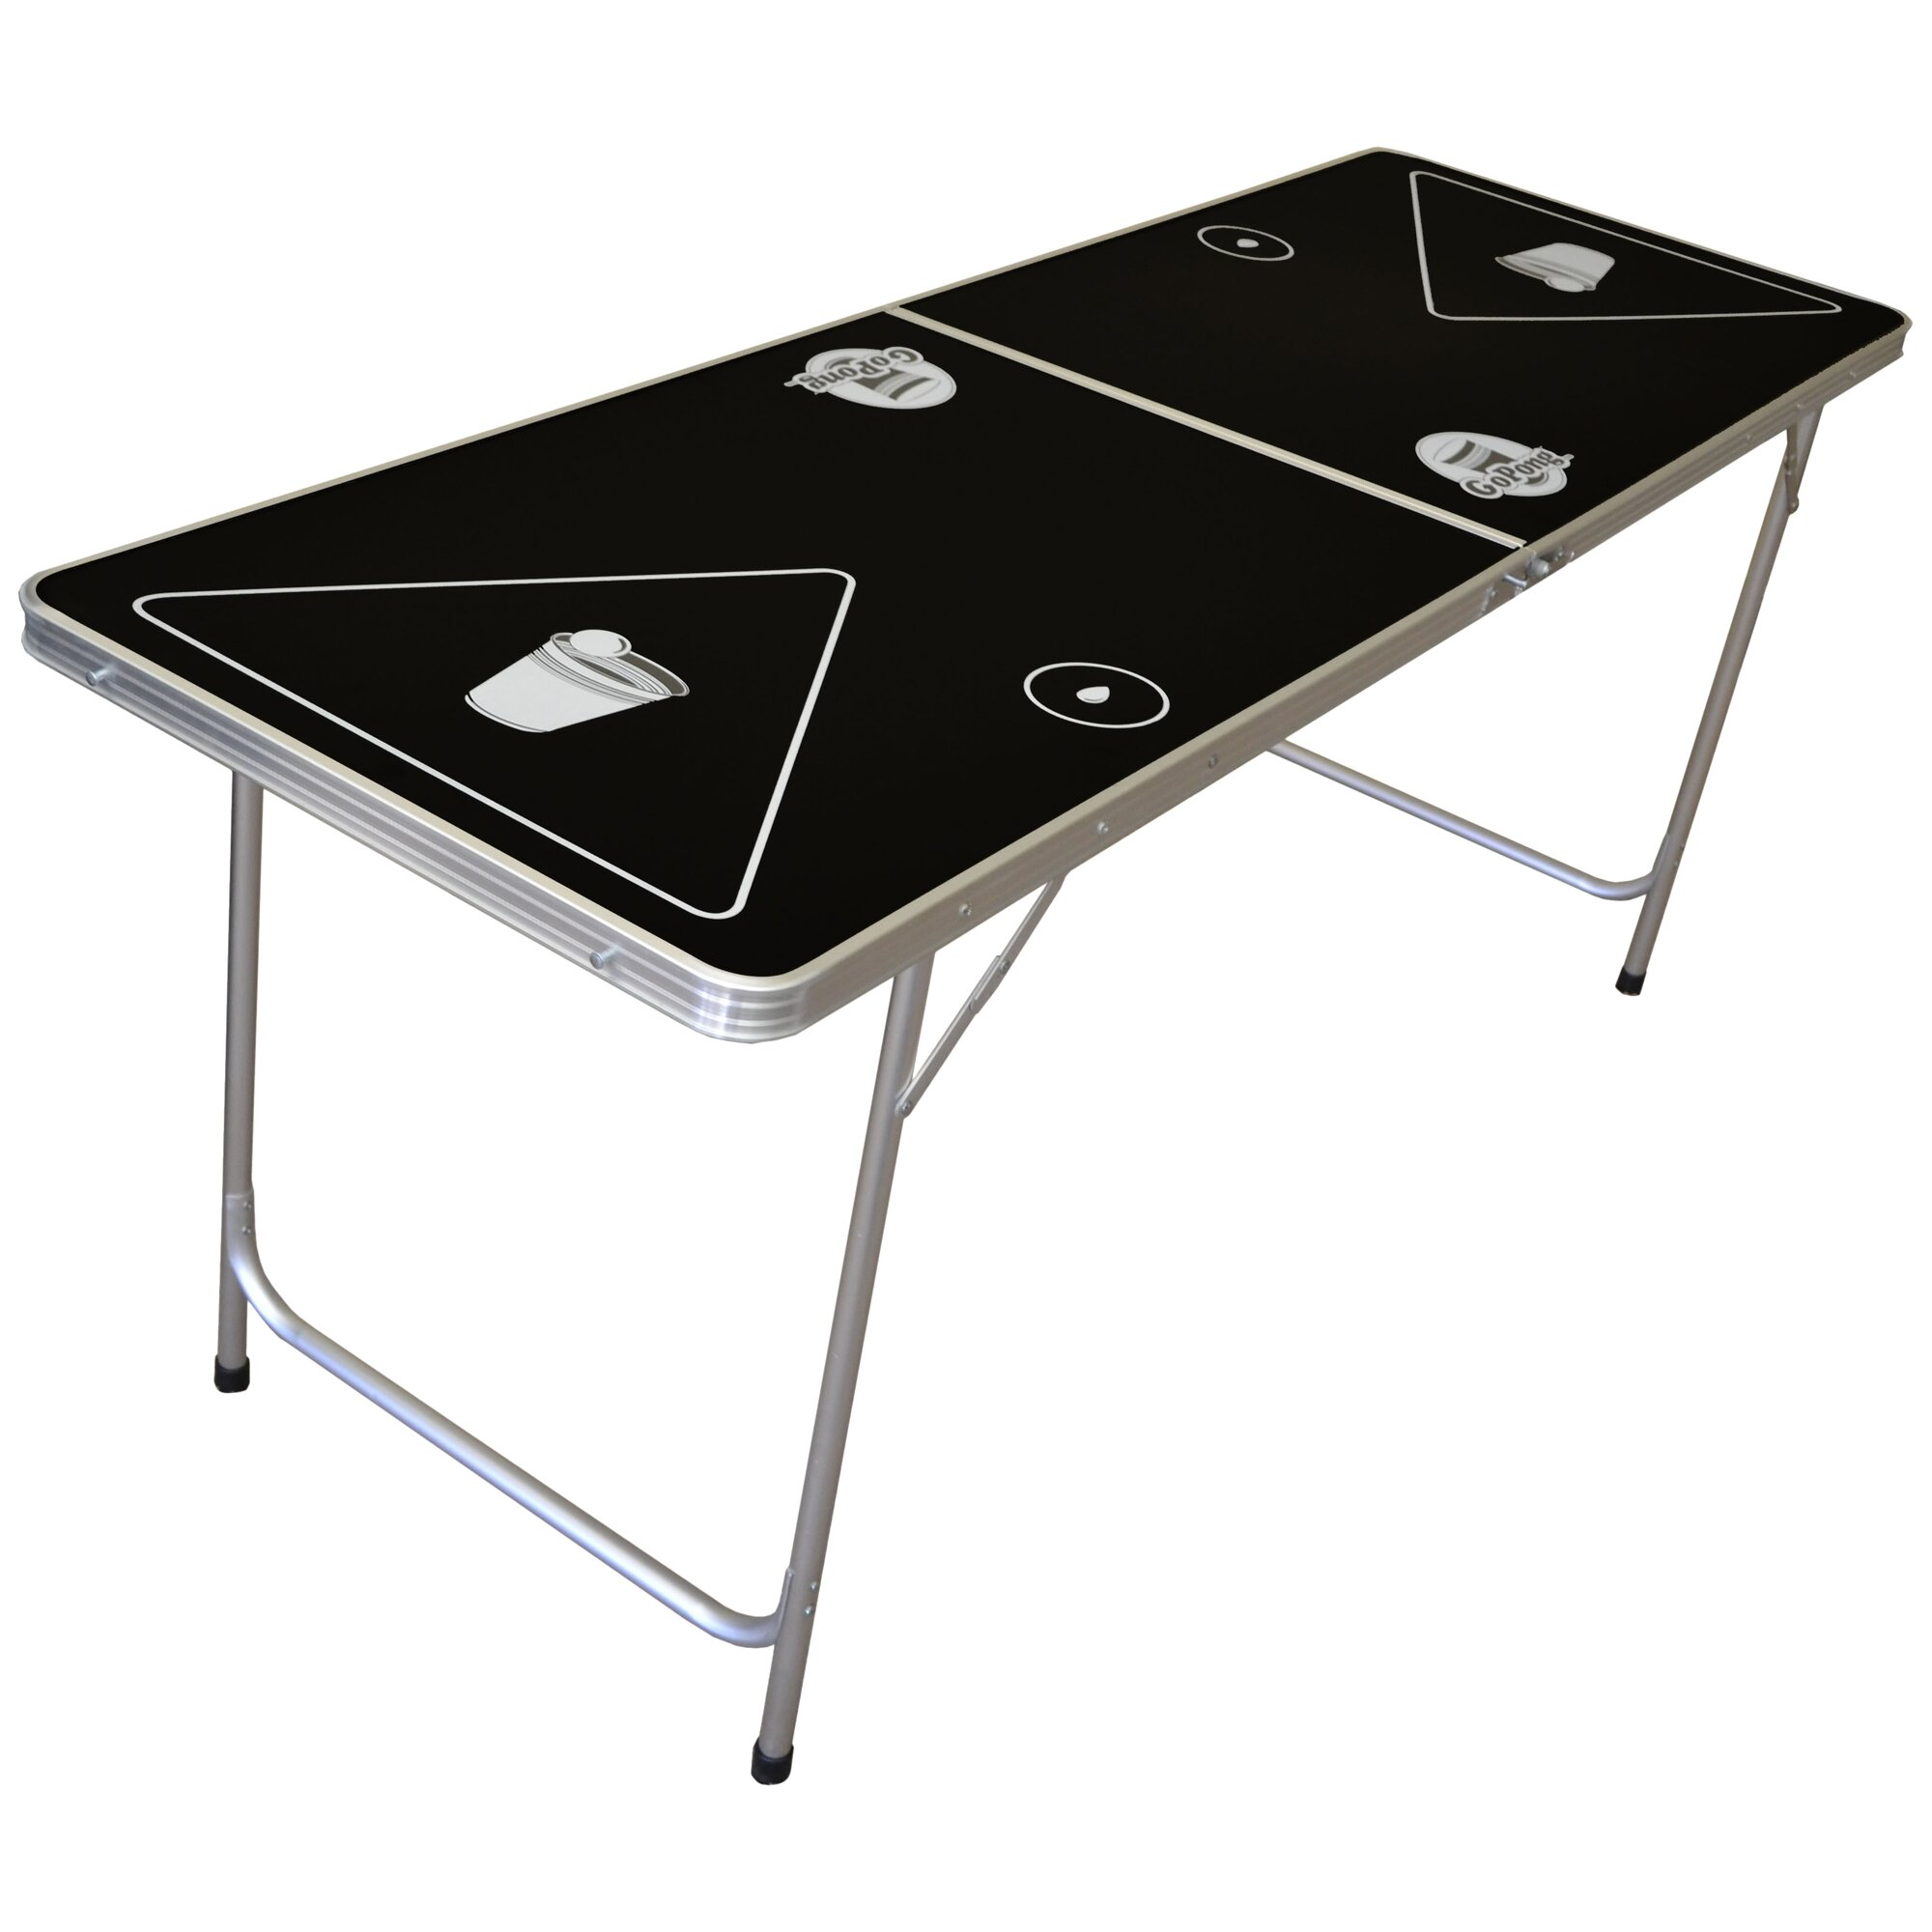 Beer pong table dimensions - Portable Beer Pong Table